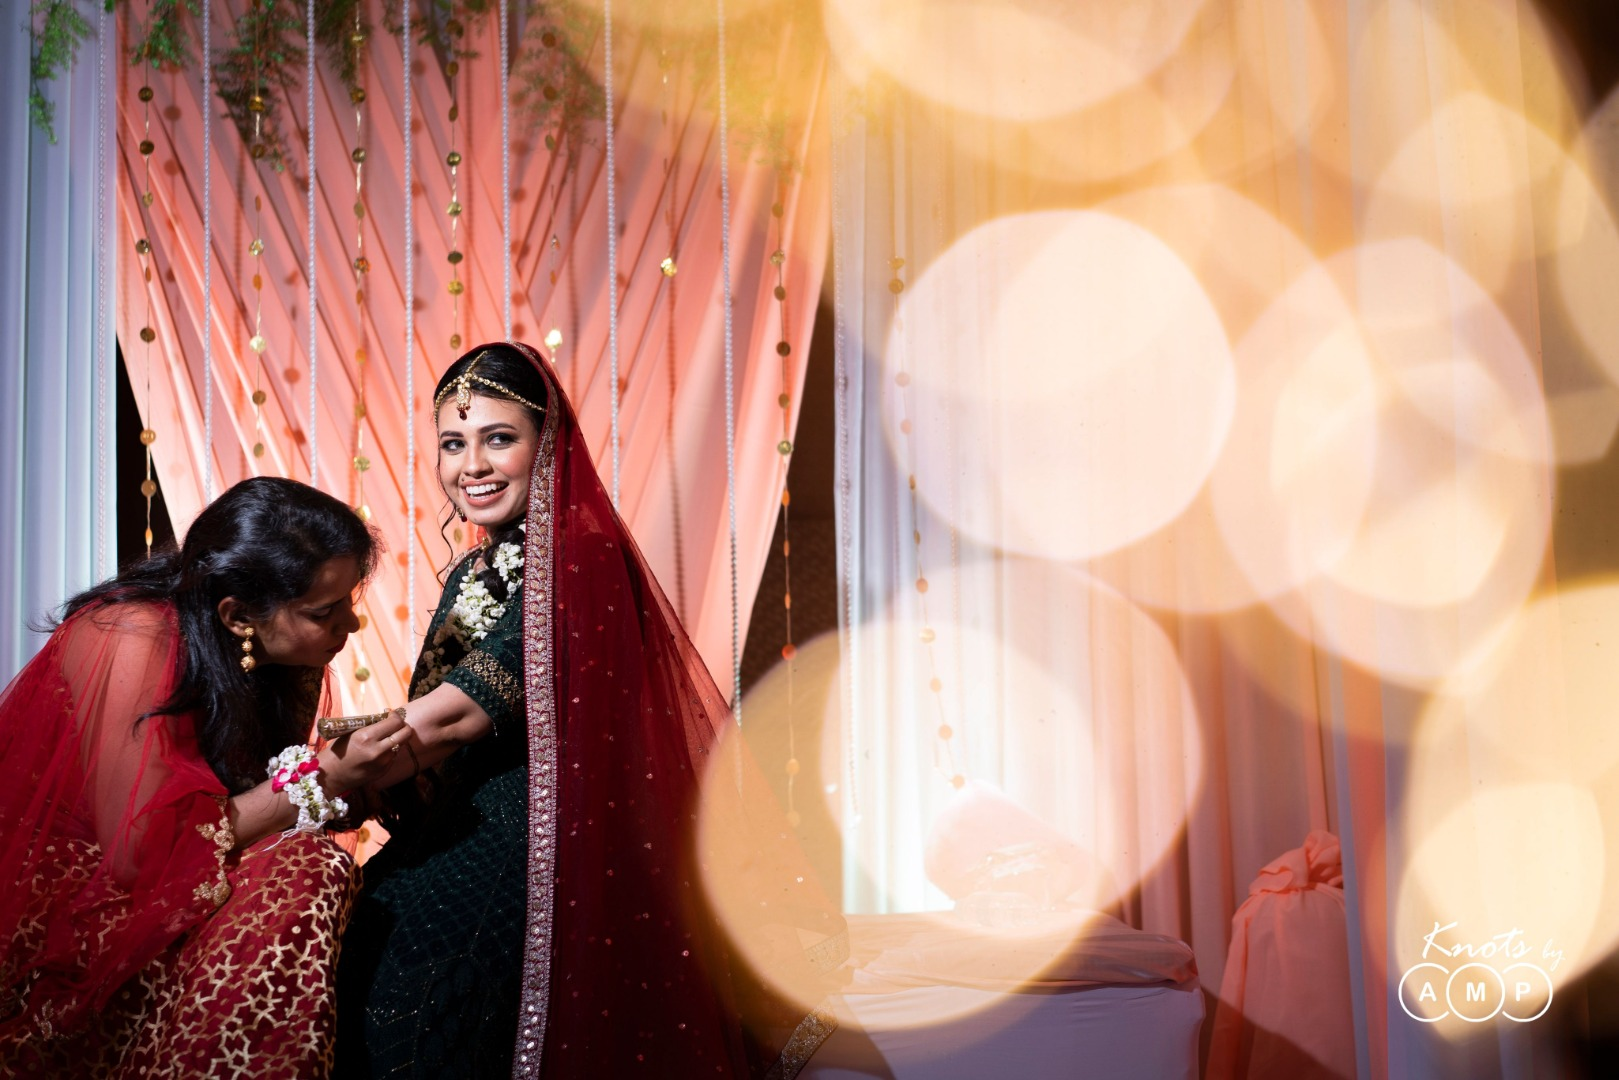 Candid Picture of Bride in Mehendi Ceremony